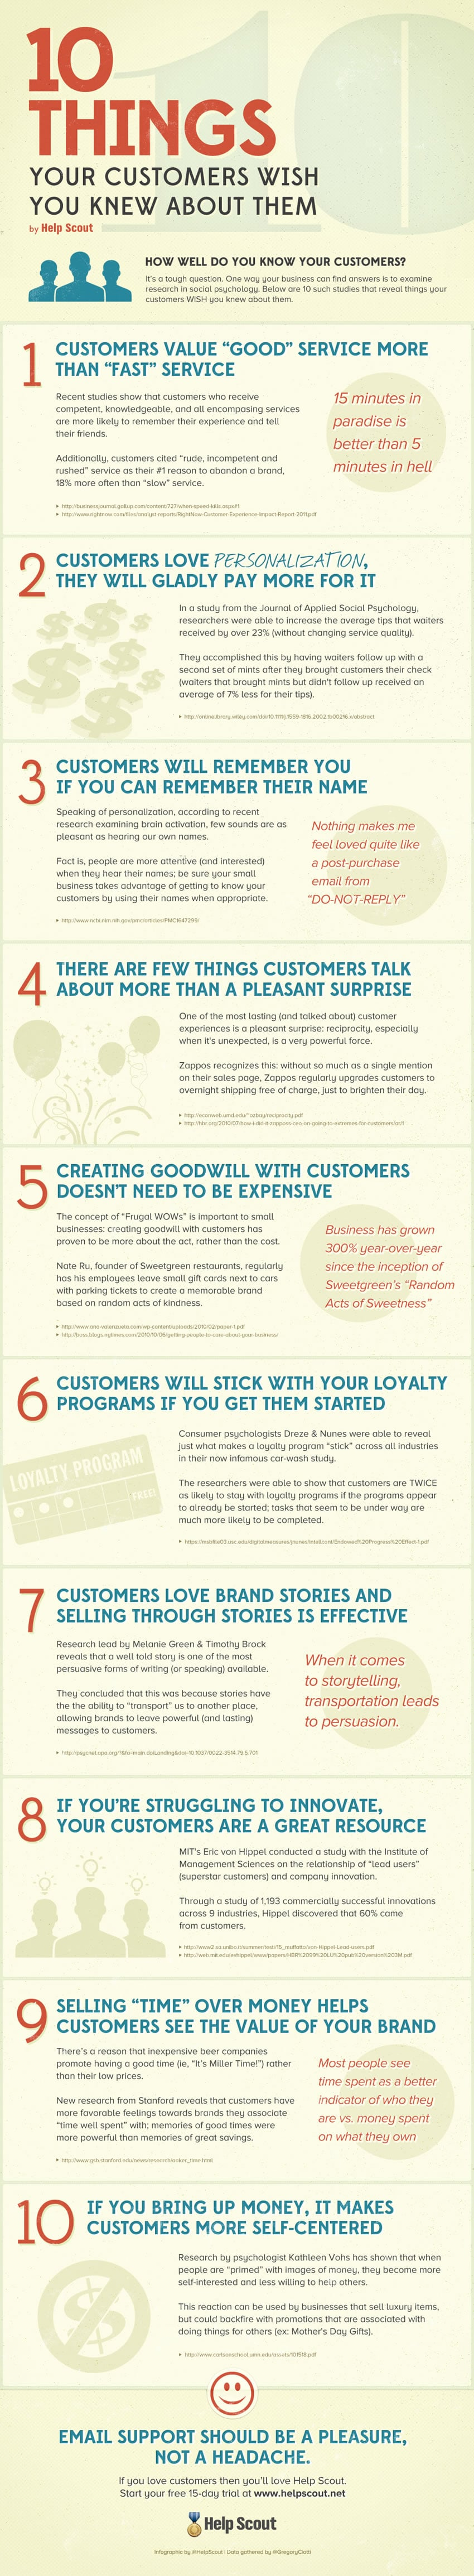 Learn-From-Your-Customers-Infographic